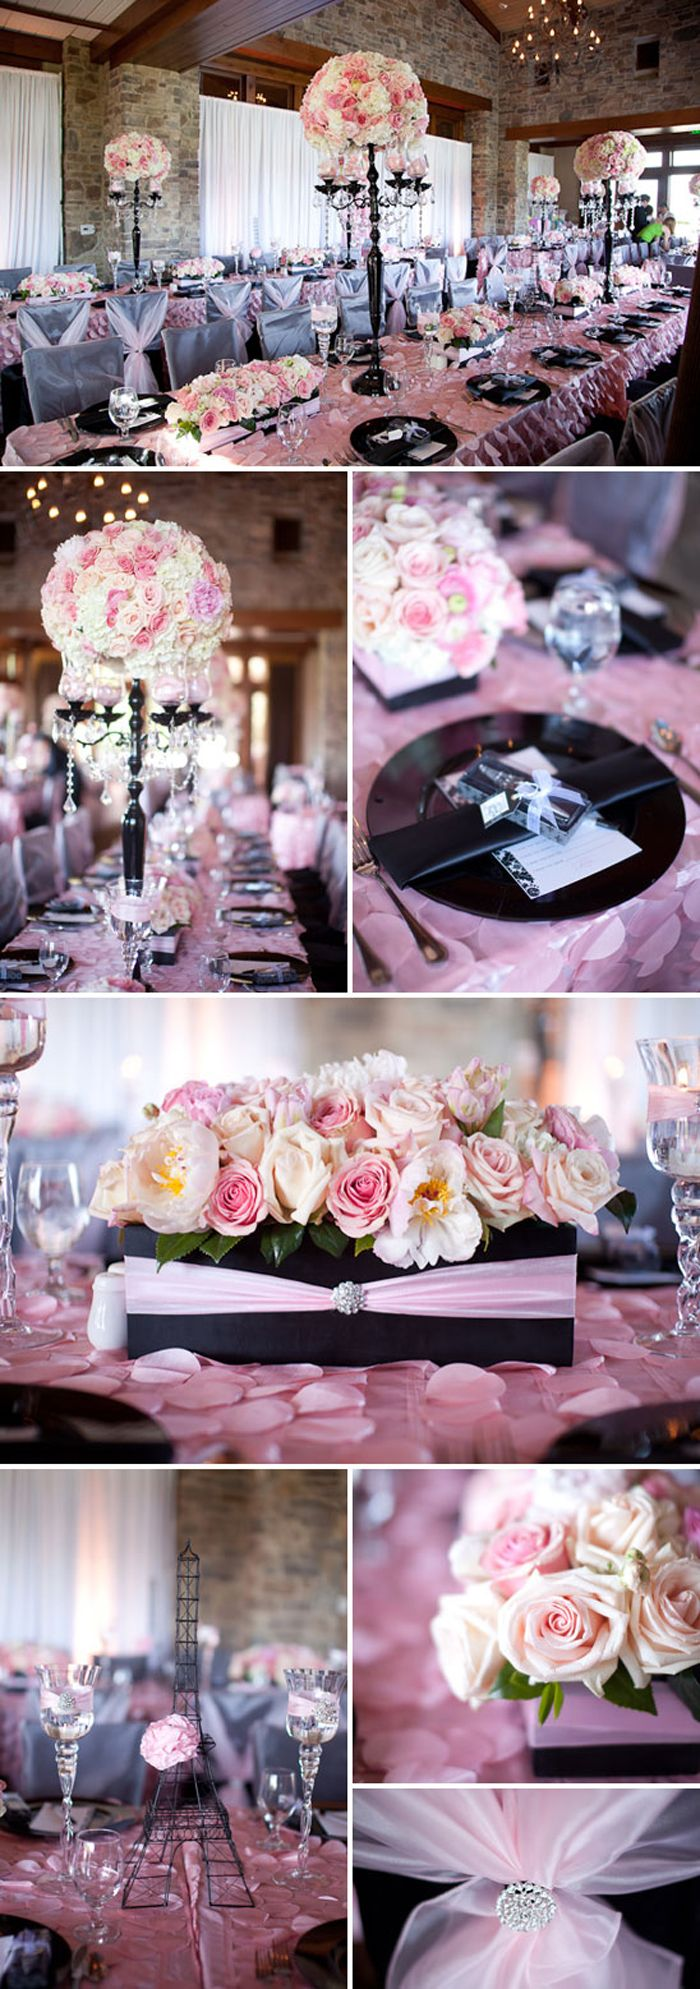 Paris-themed baby shower from Celebrate on Pretty My Party #babygirl #babyshower #paris #black #pink #shower #prettymyparty #table #tablesetting #eiffeltower